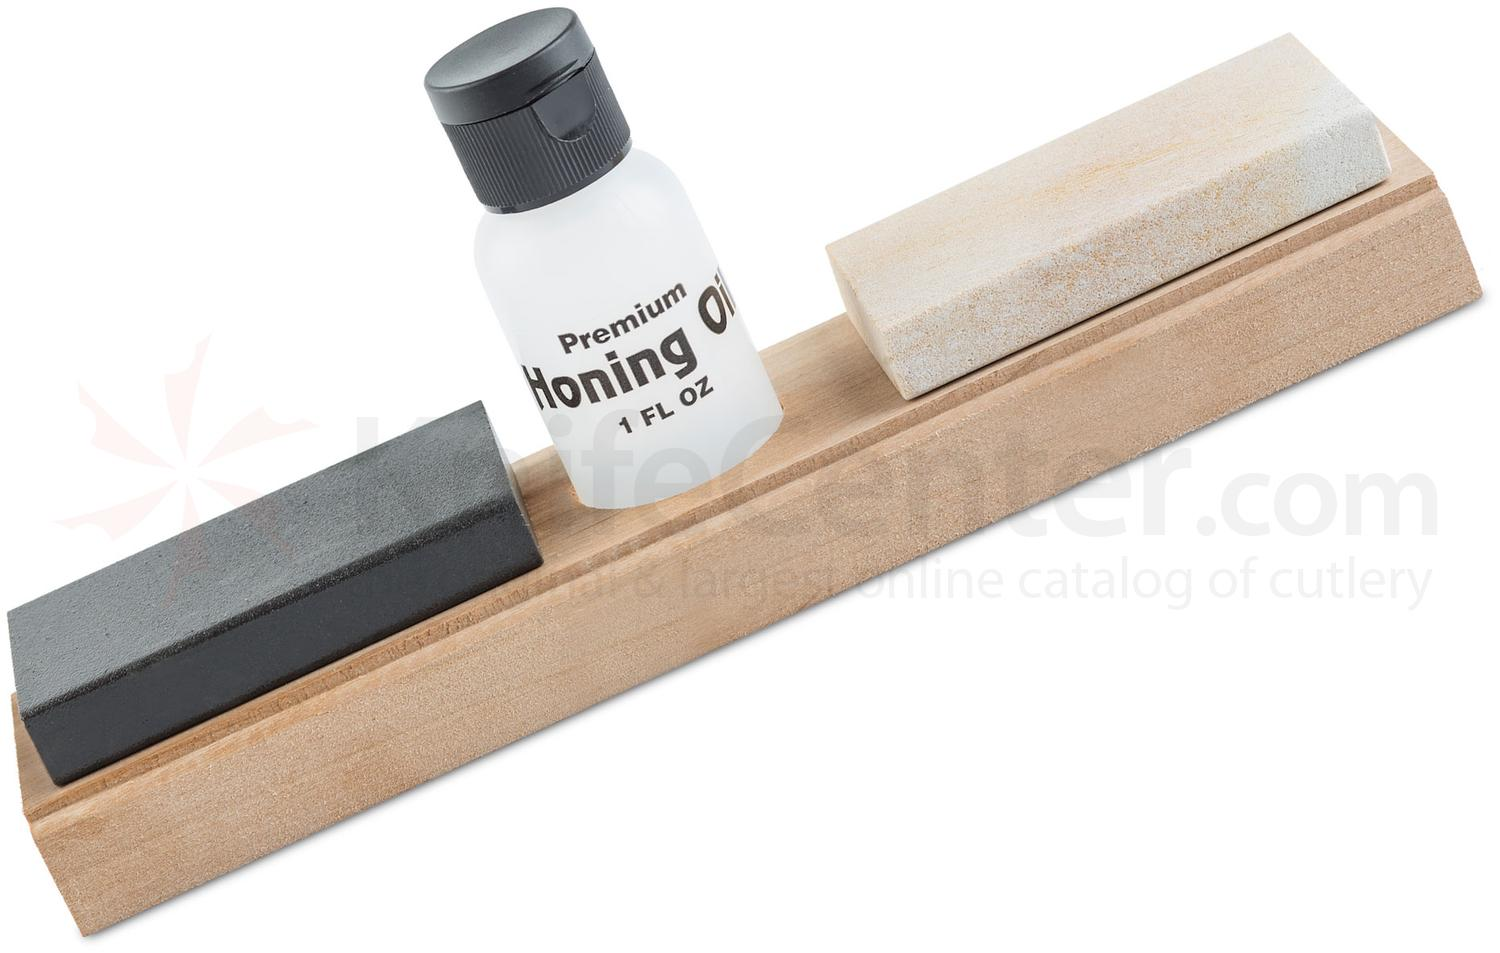 Hall Sharpening Stones 30286 4 Quot Soft Hard Arkansas